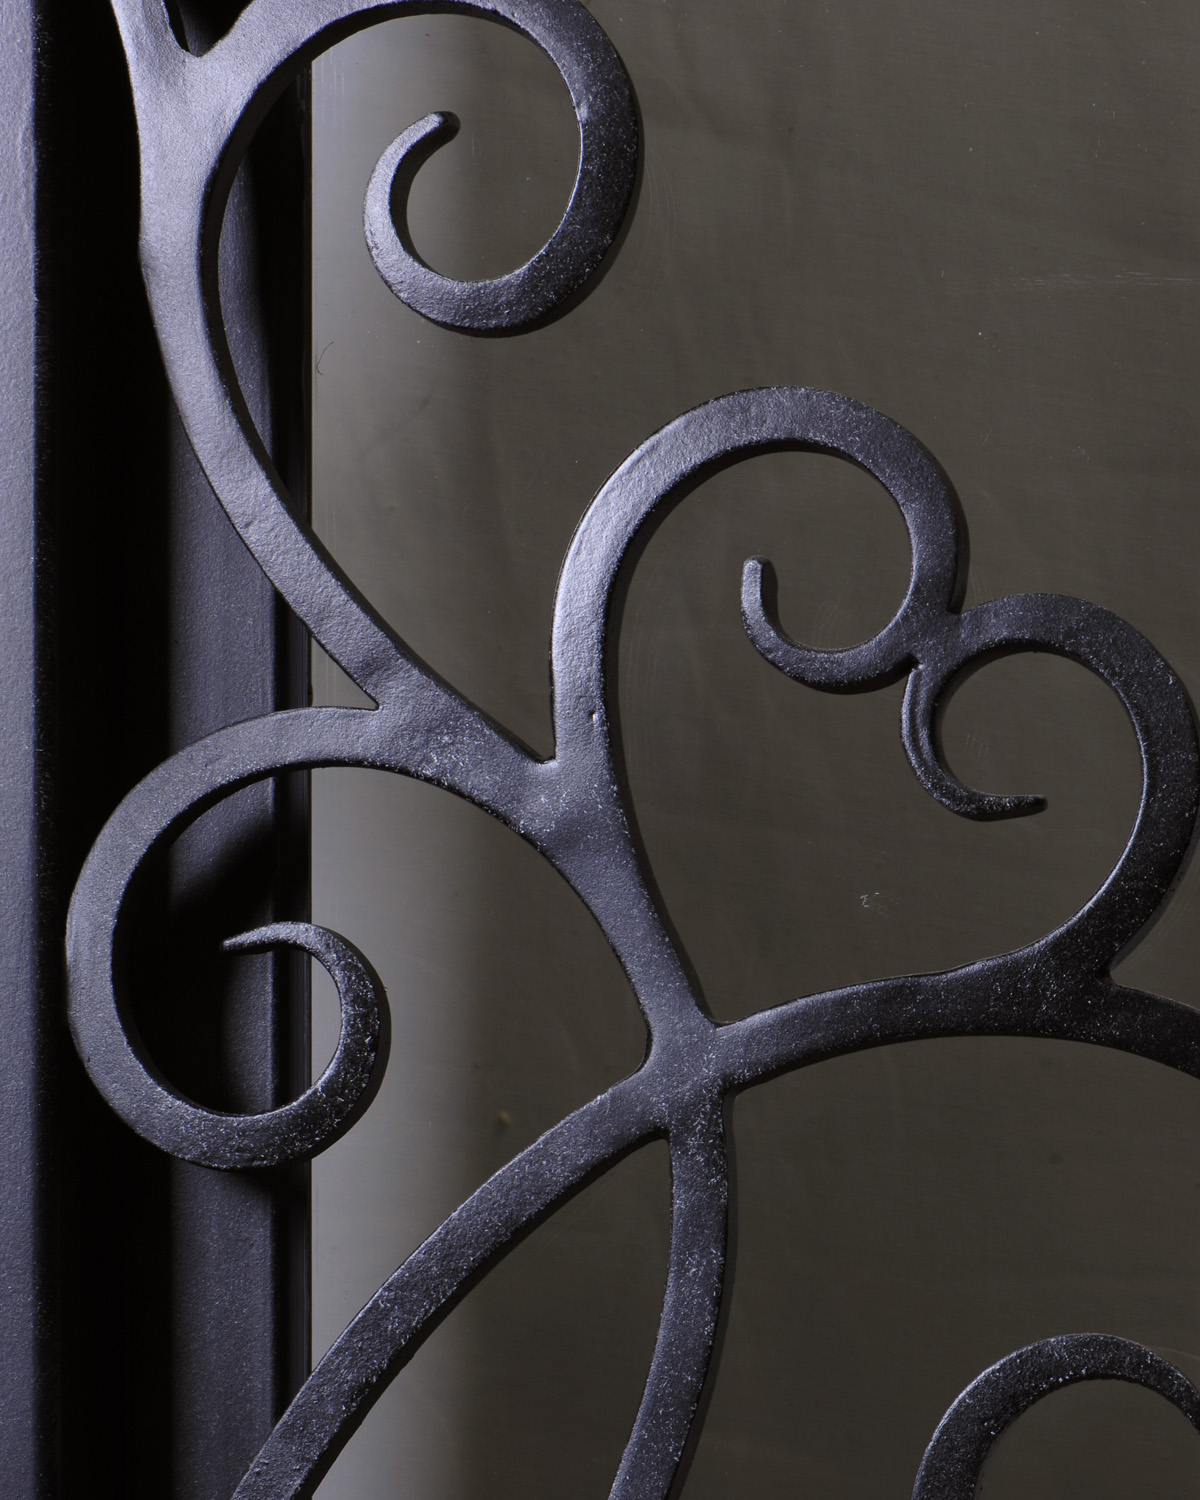 Handcrafted wrought iron scrollwork